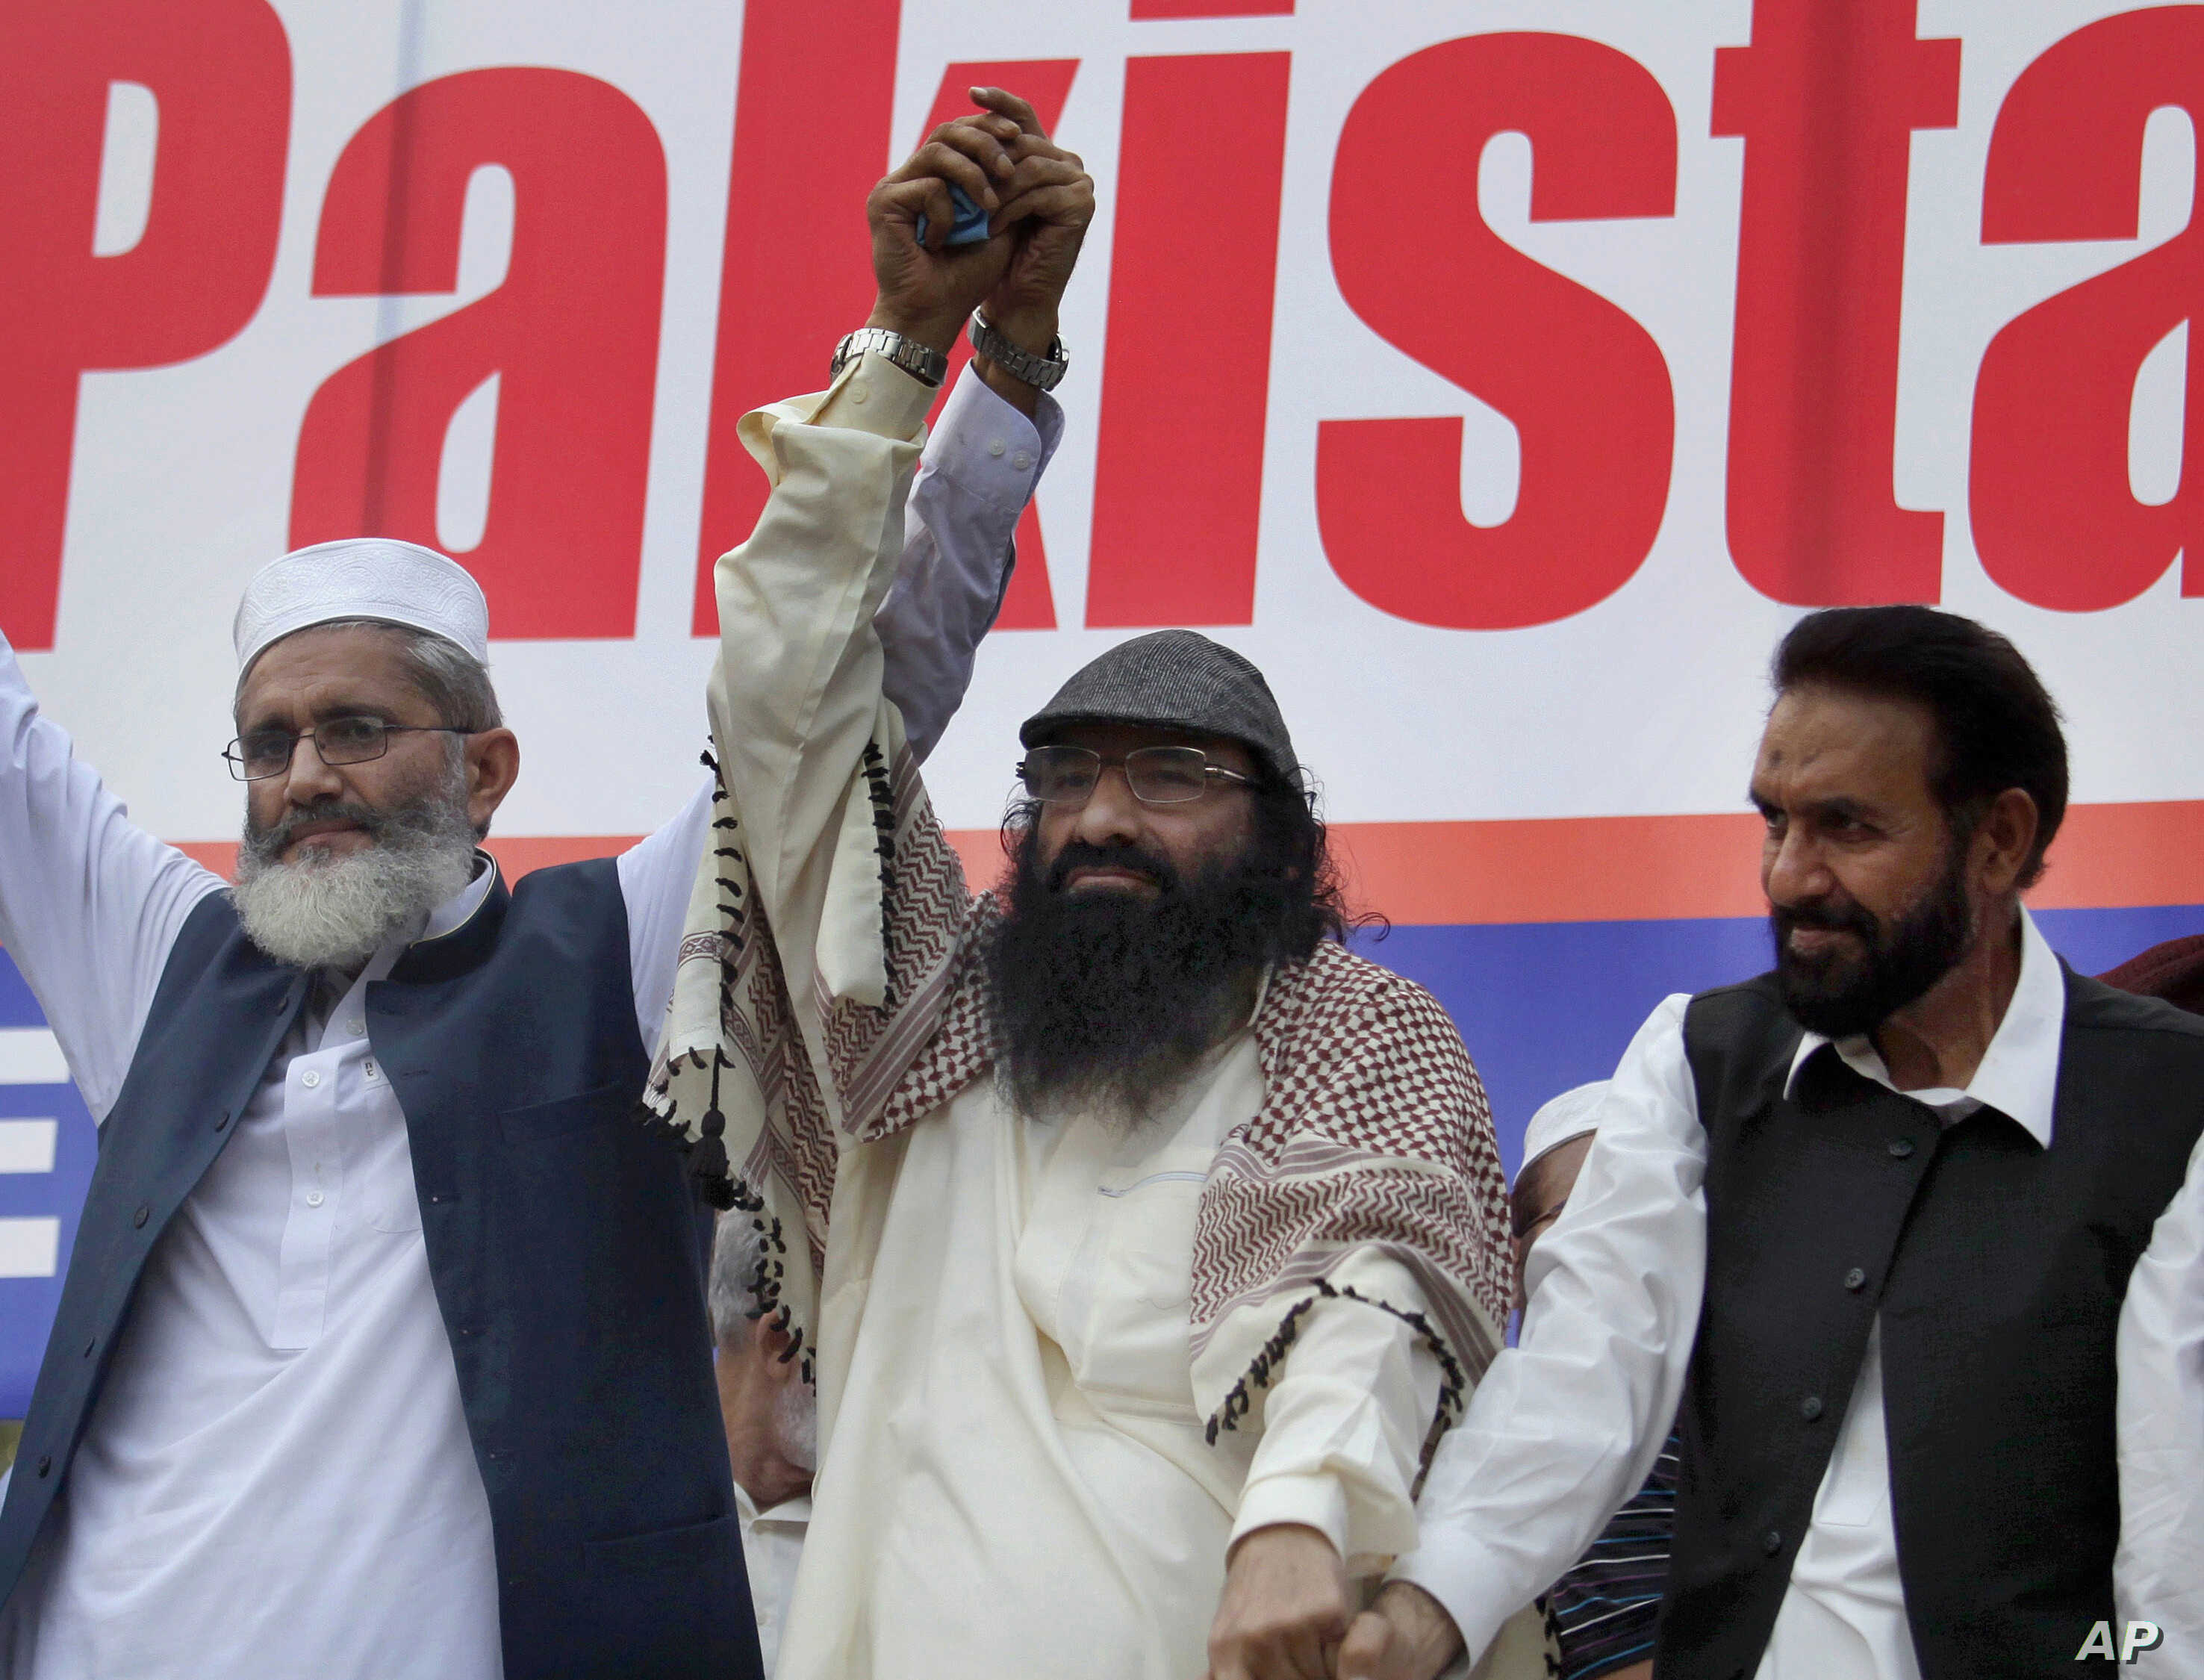 FILE - Leader of Hizbul Mujahideen, Syed Salahuddin, center, joins hands with leaders of Jamaat-e-Islami, Sirajul Haq, left, and Mian Aslam, during an anti-India rally in Islamabad, Pakistan, July 24, 2016.